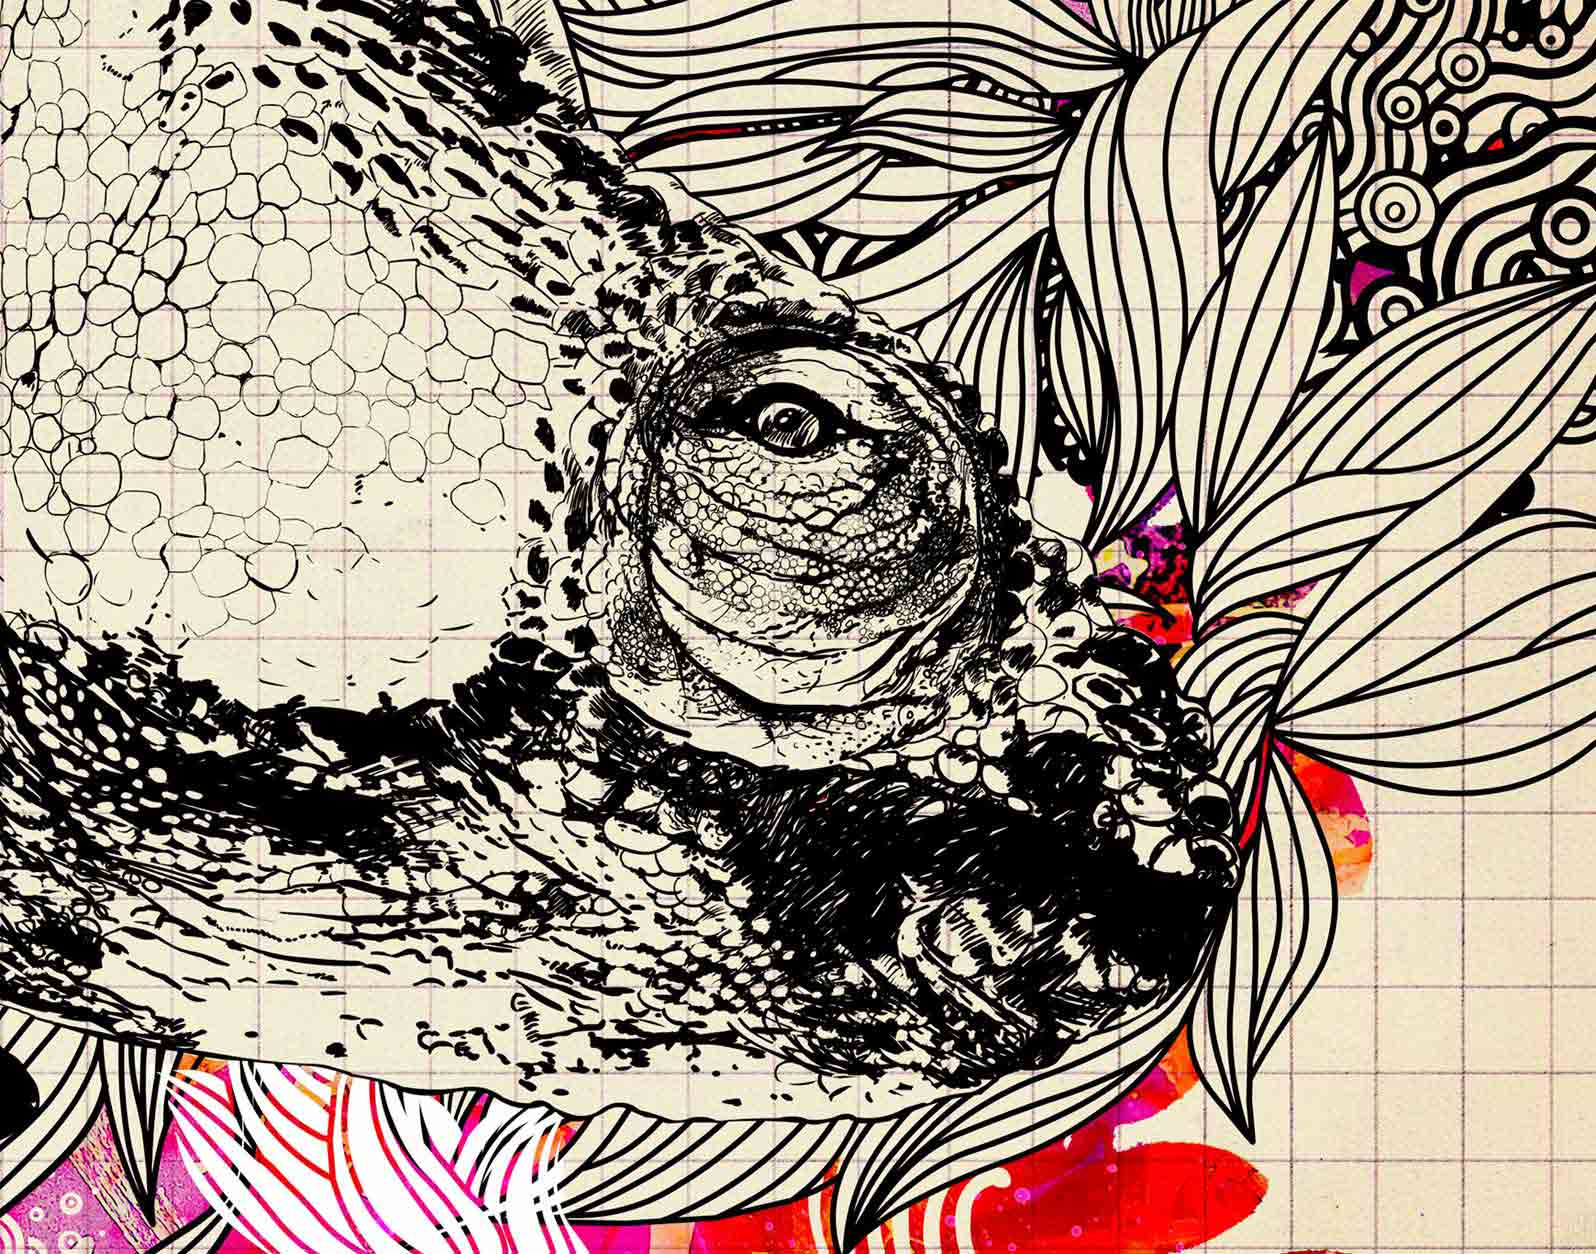 Anca Stefanescu | Chameleon Change, Computer Art, Print On Canvas